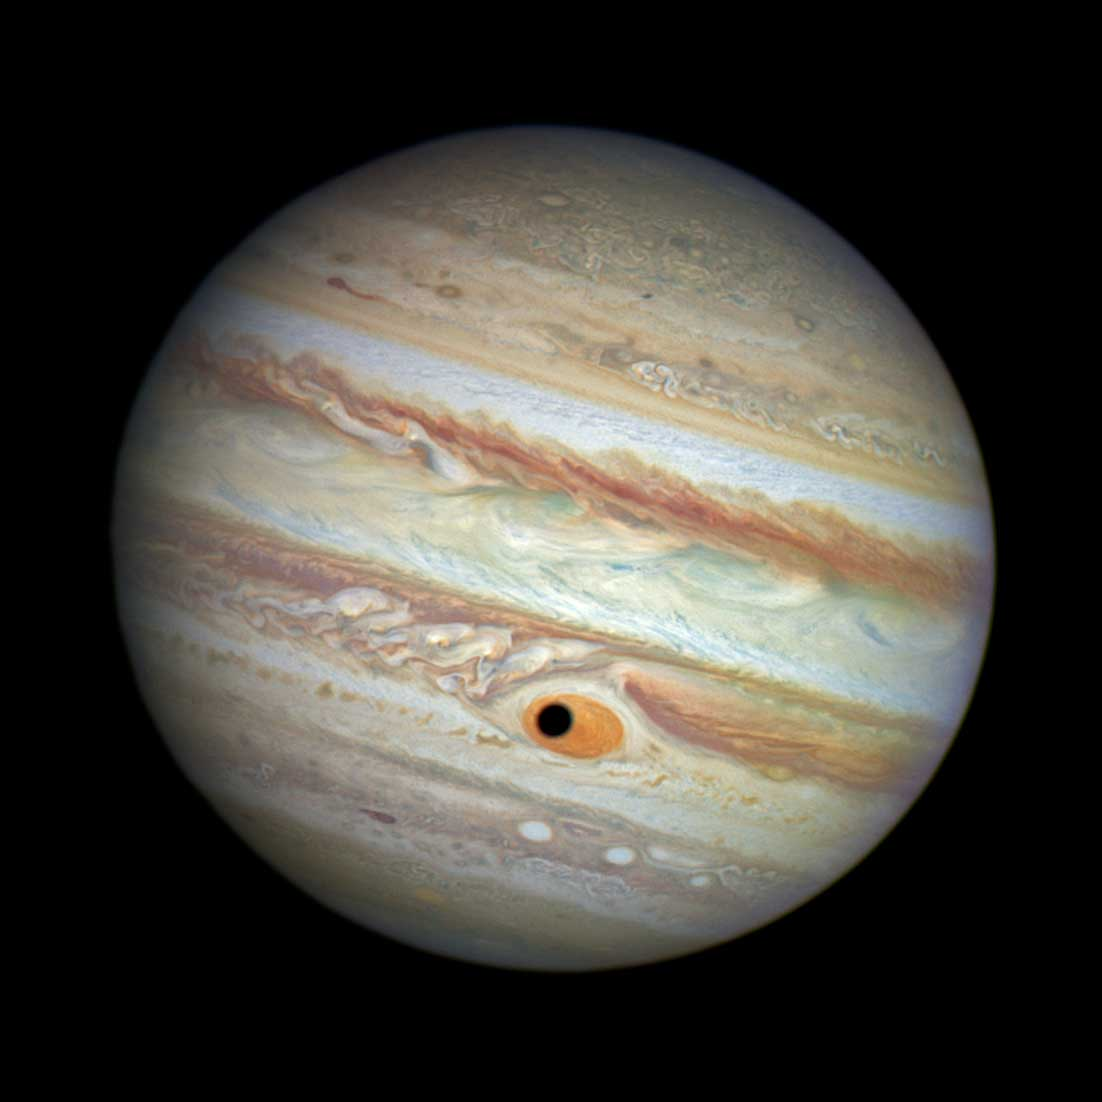 <strong>Jupiter's Eye</strong>:                                                                      The black spot which simulates a giant eye on the surface of Jupiter was actually just a well-timed shadow, captured by one of Hubble's cameras as Jupiter's moon Ganymede passed by the planet's famed Great Red Spot.                                                                      <i>Image released in Oct. 2014</i>